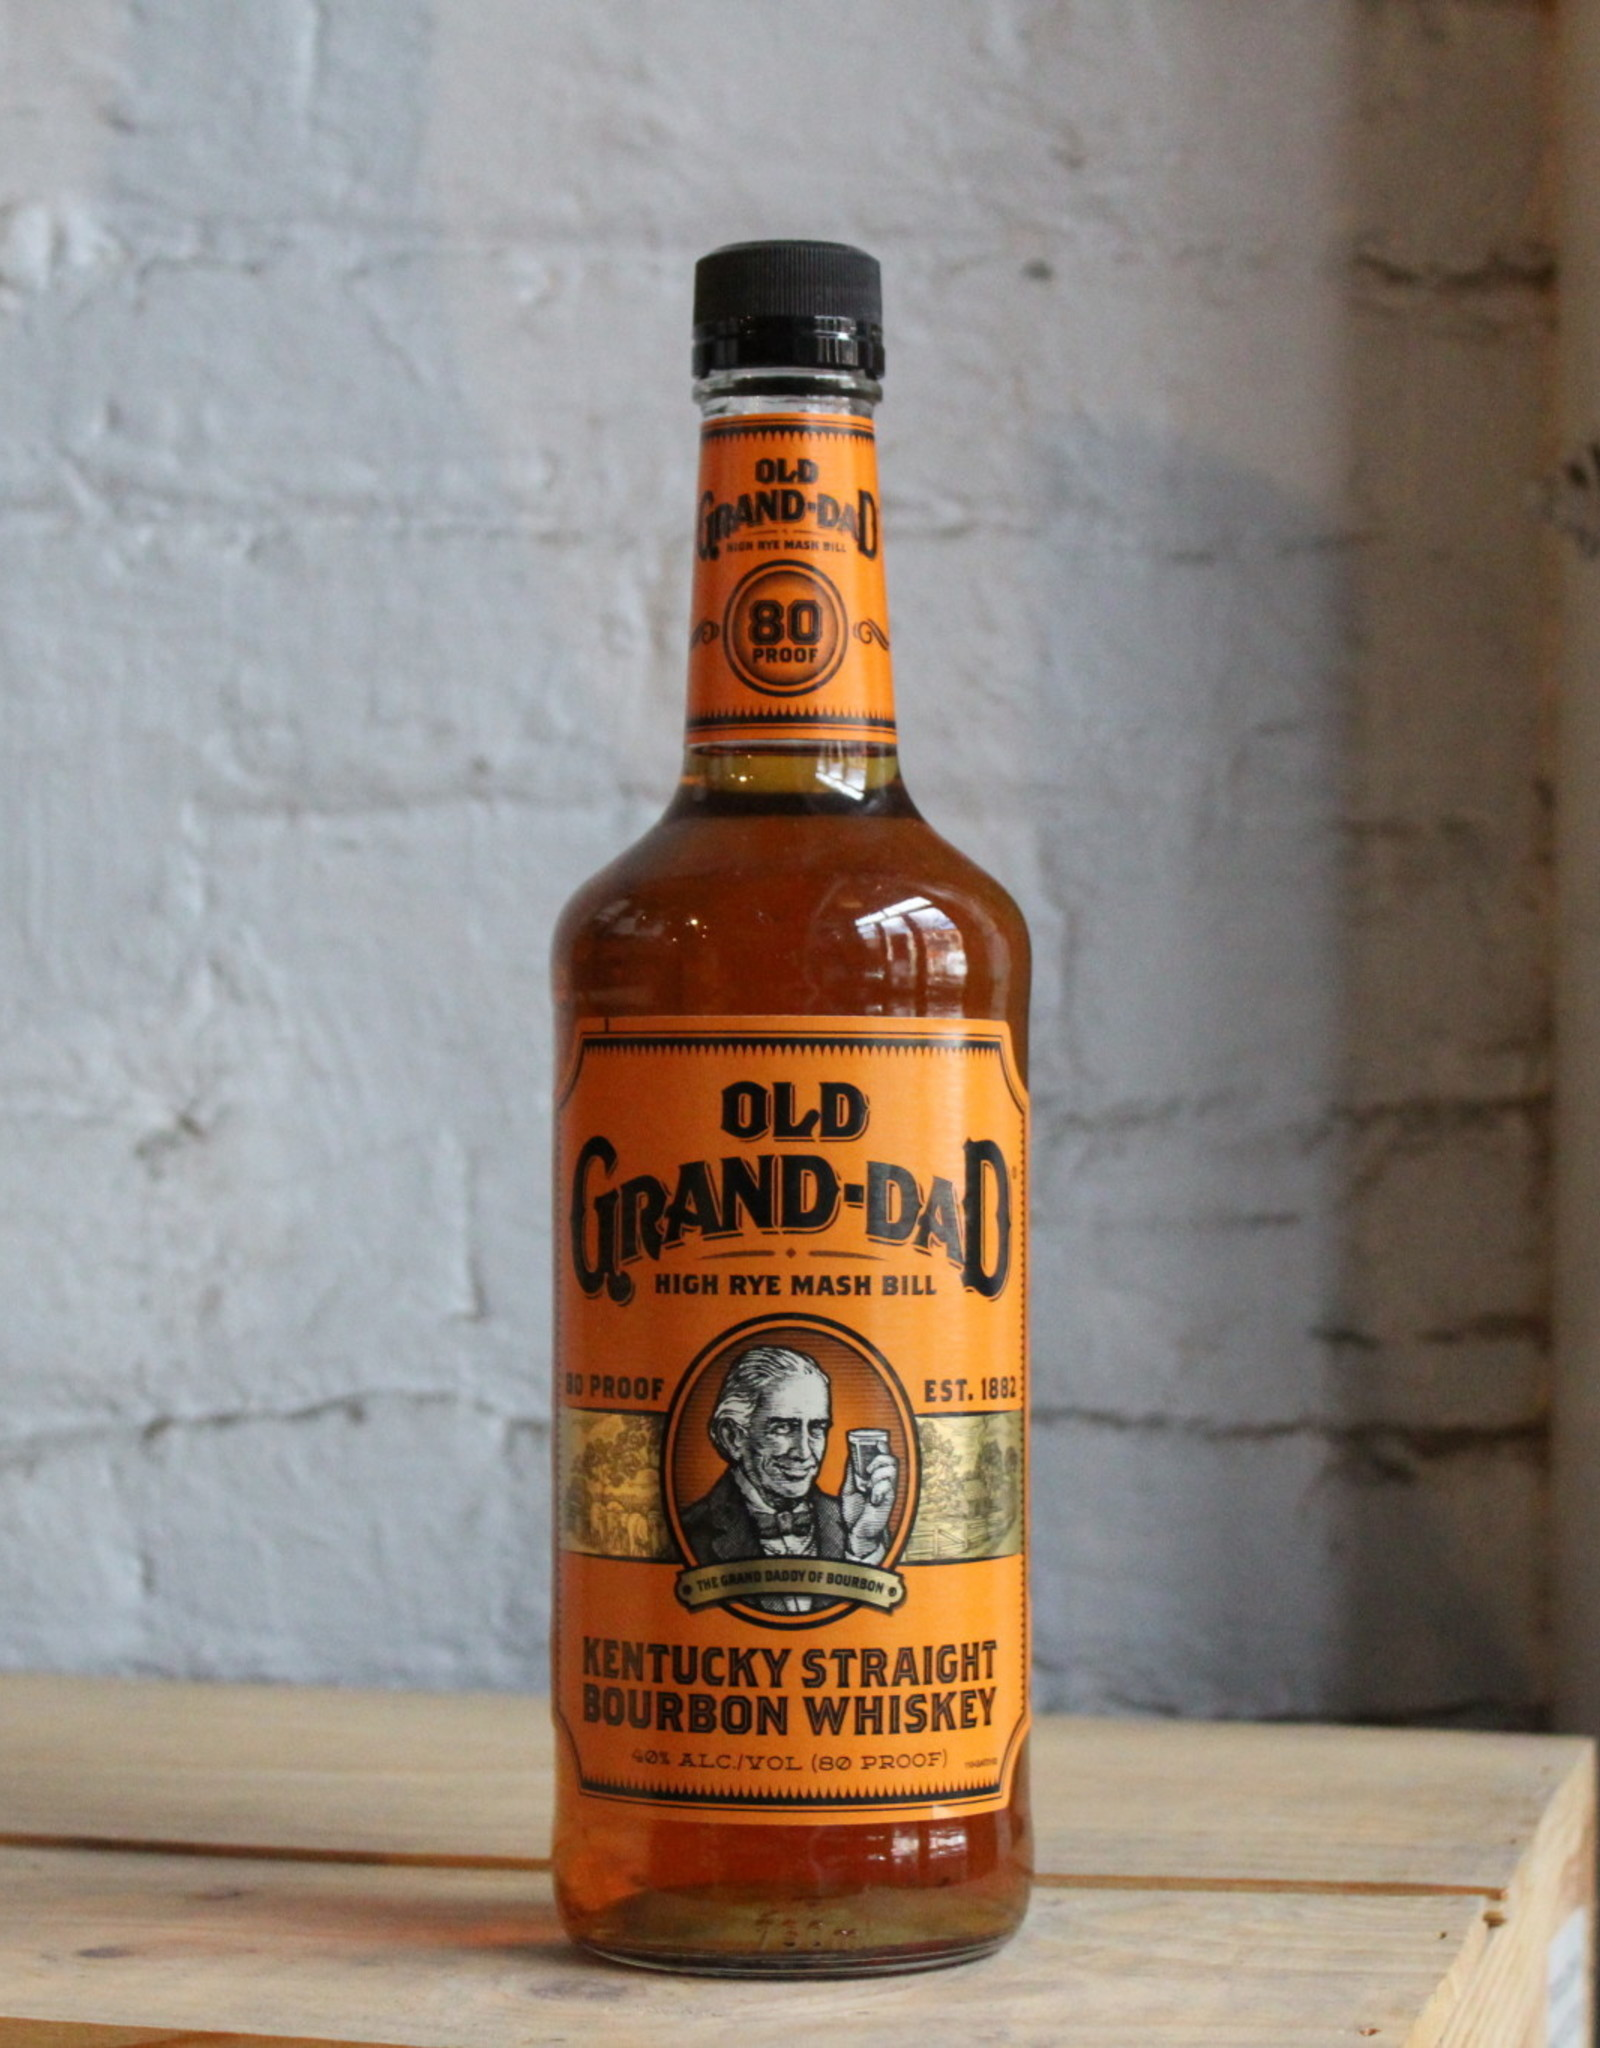 Old Grand-Dad 80 proof Straight Bourbon Whiskey - Clermont, KY (750ml)